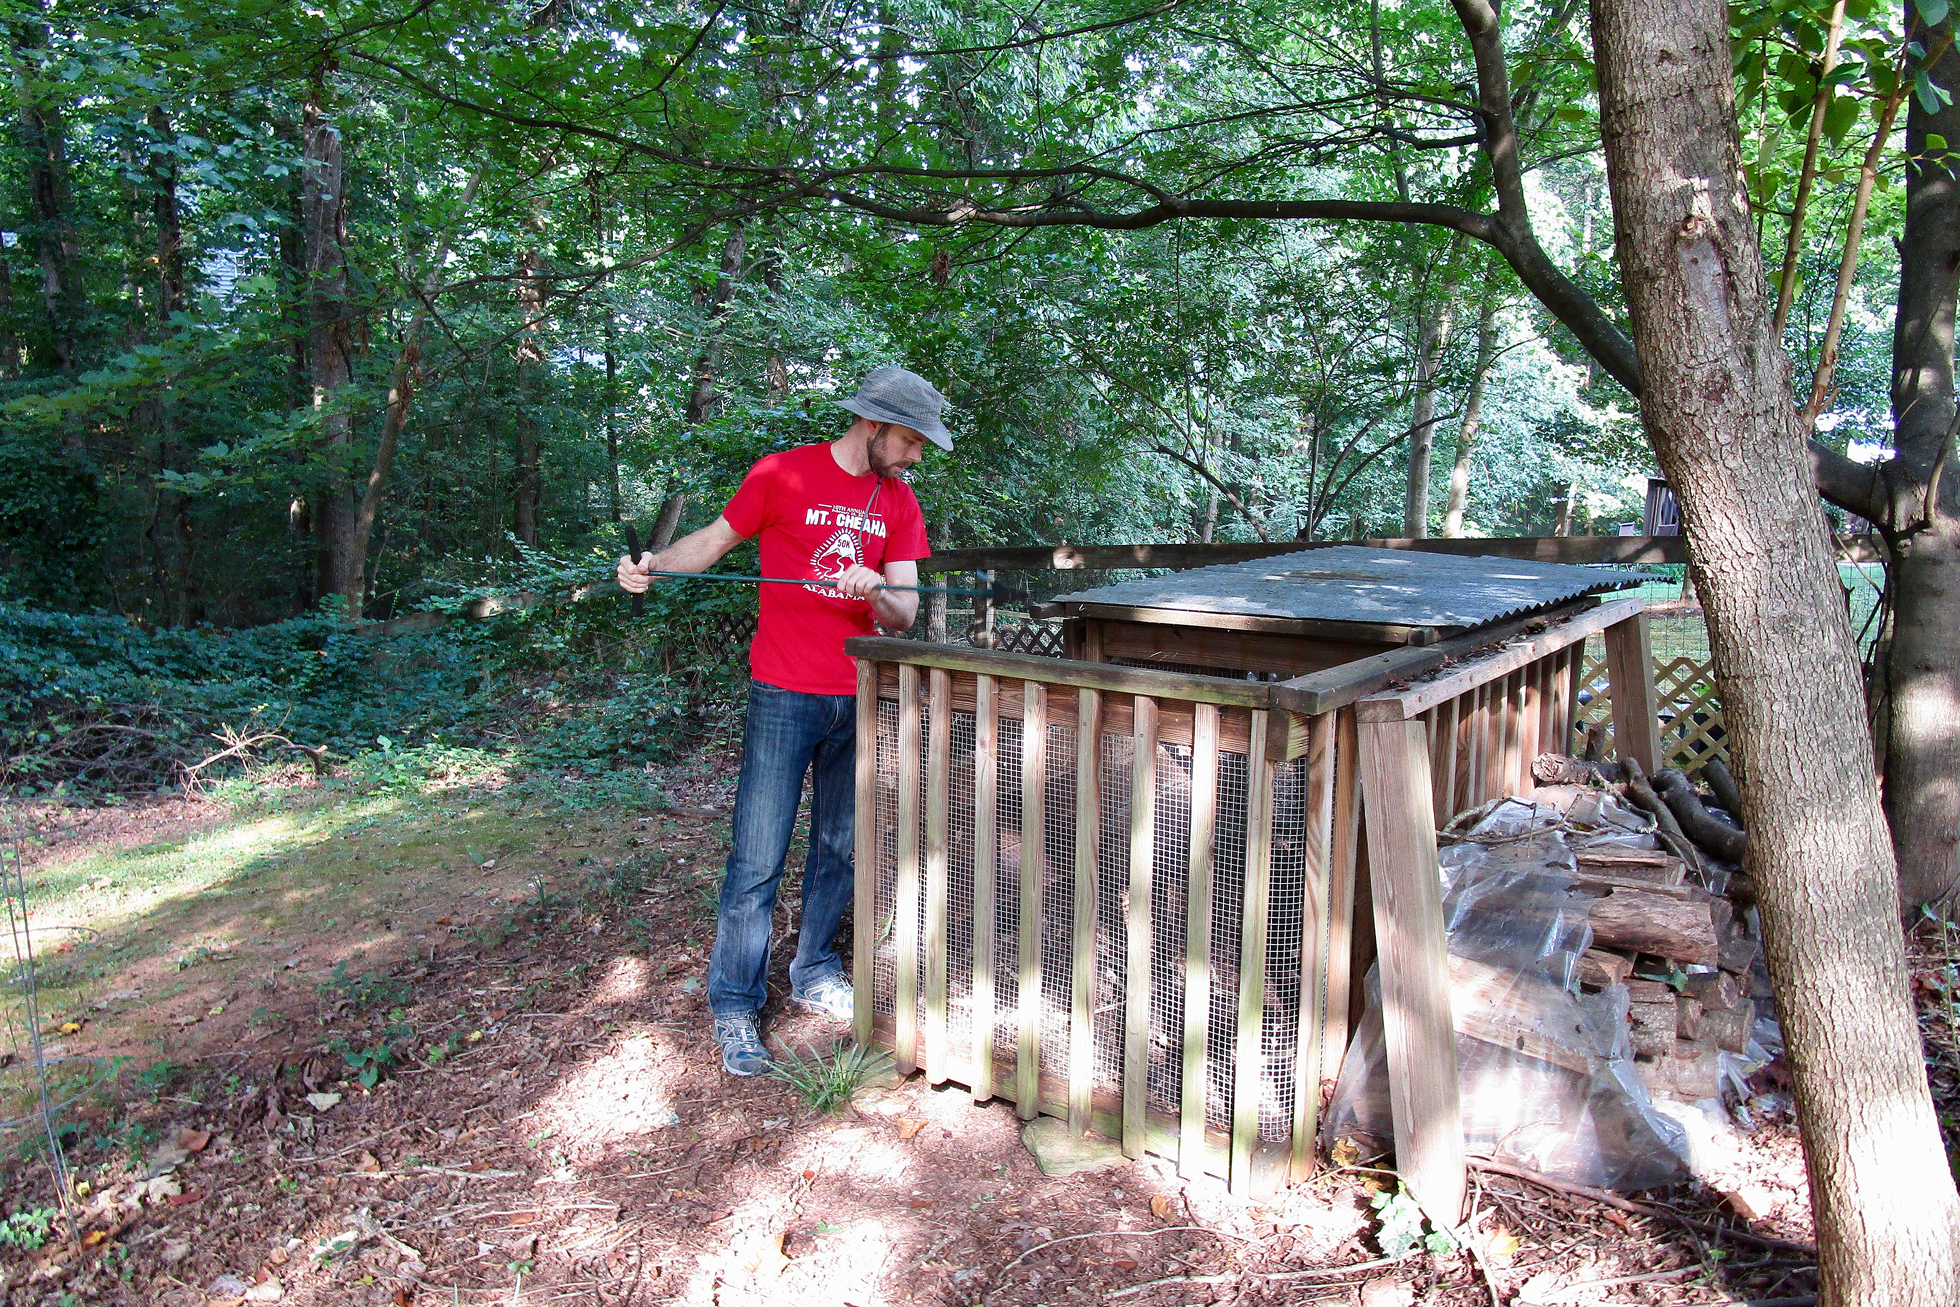 A man in a red shirt is opening a compost bin